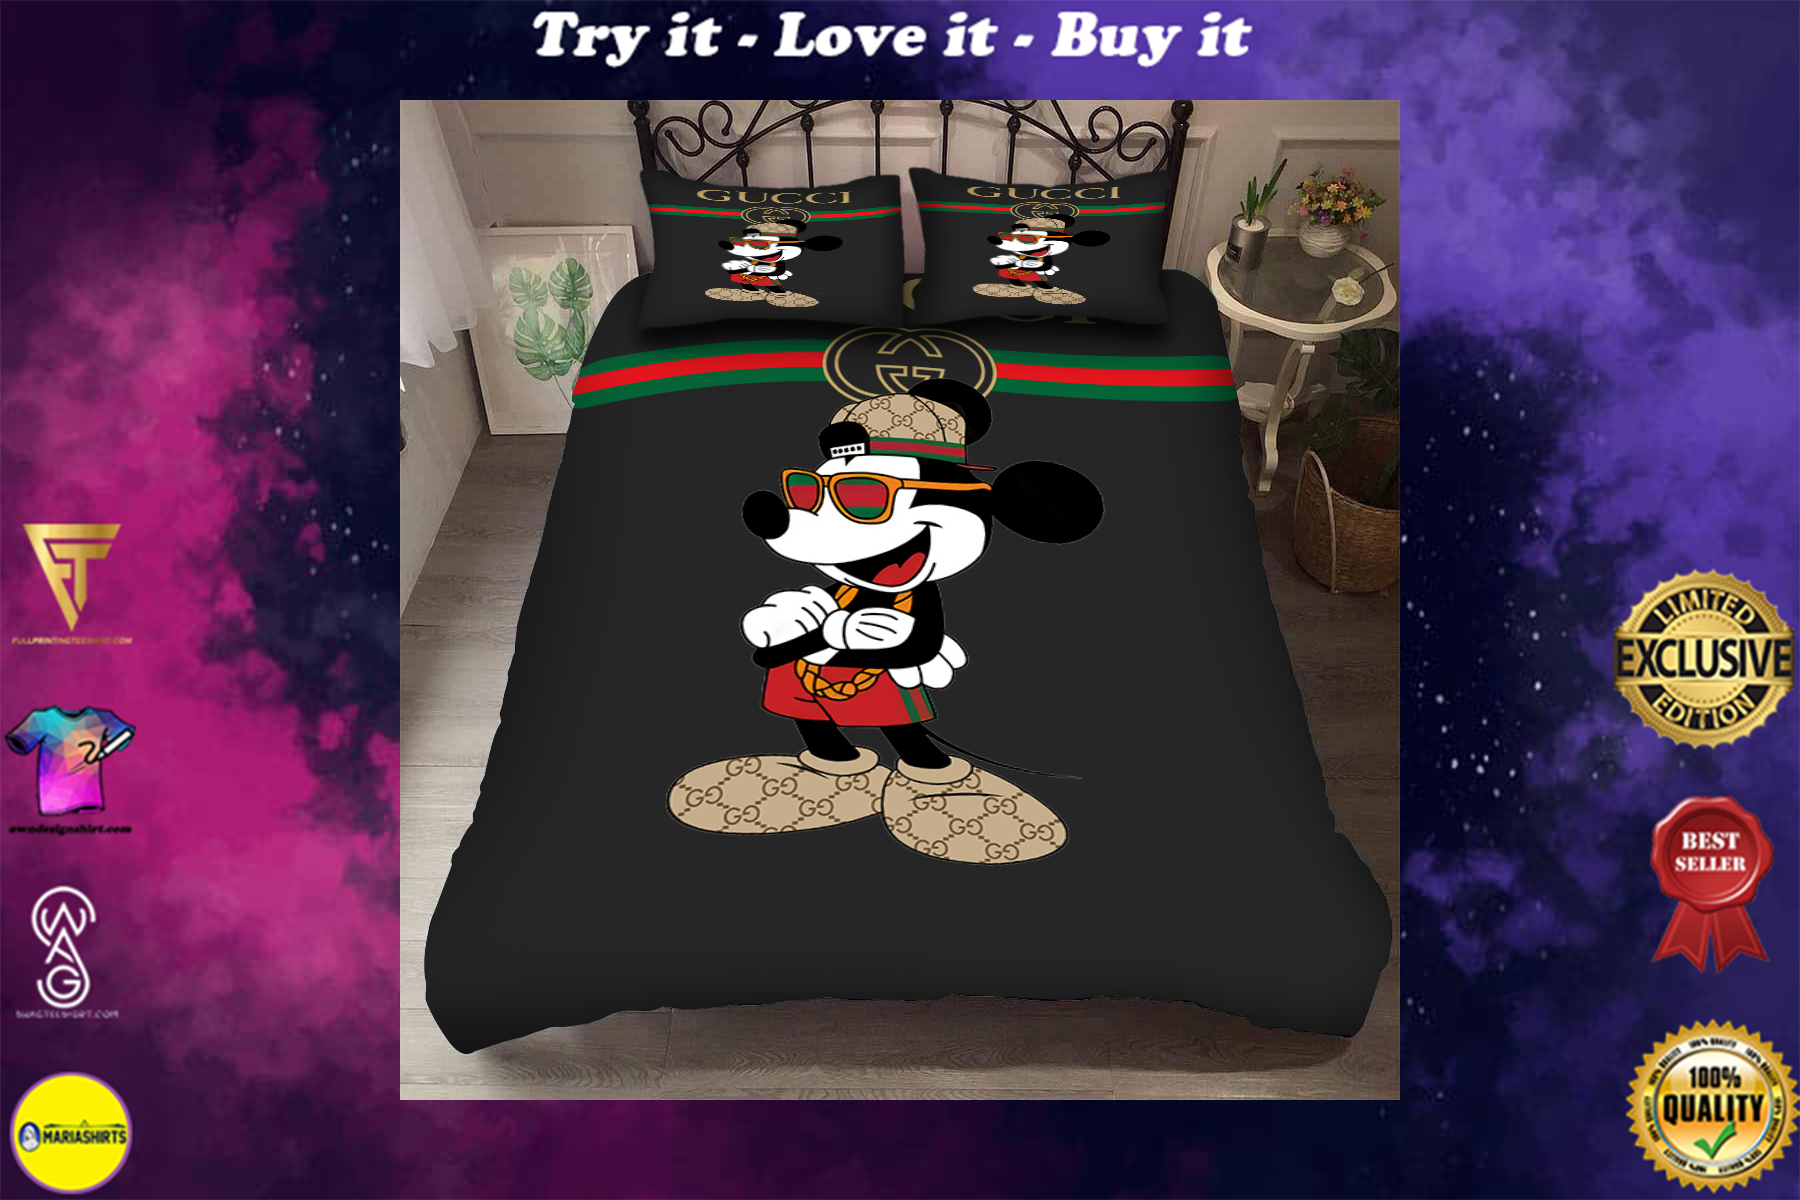 [special edition] mickey mouse with gucci symbol bedding set - maria